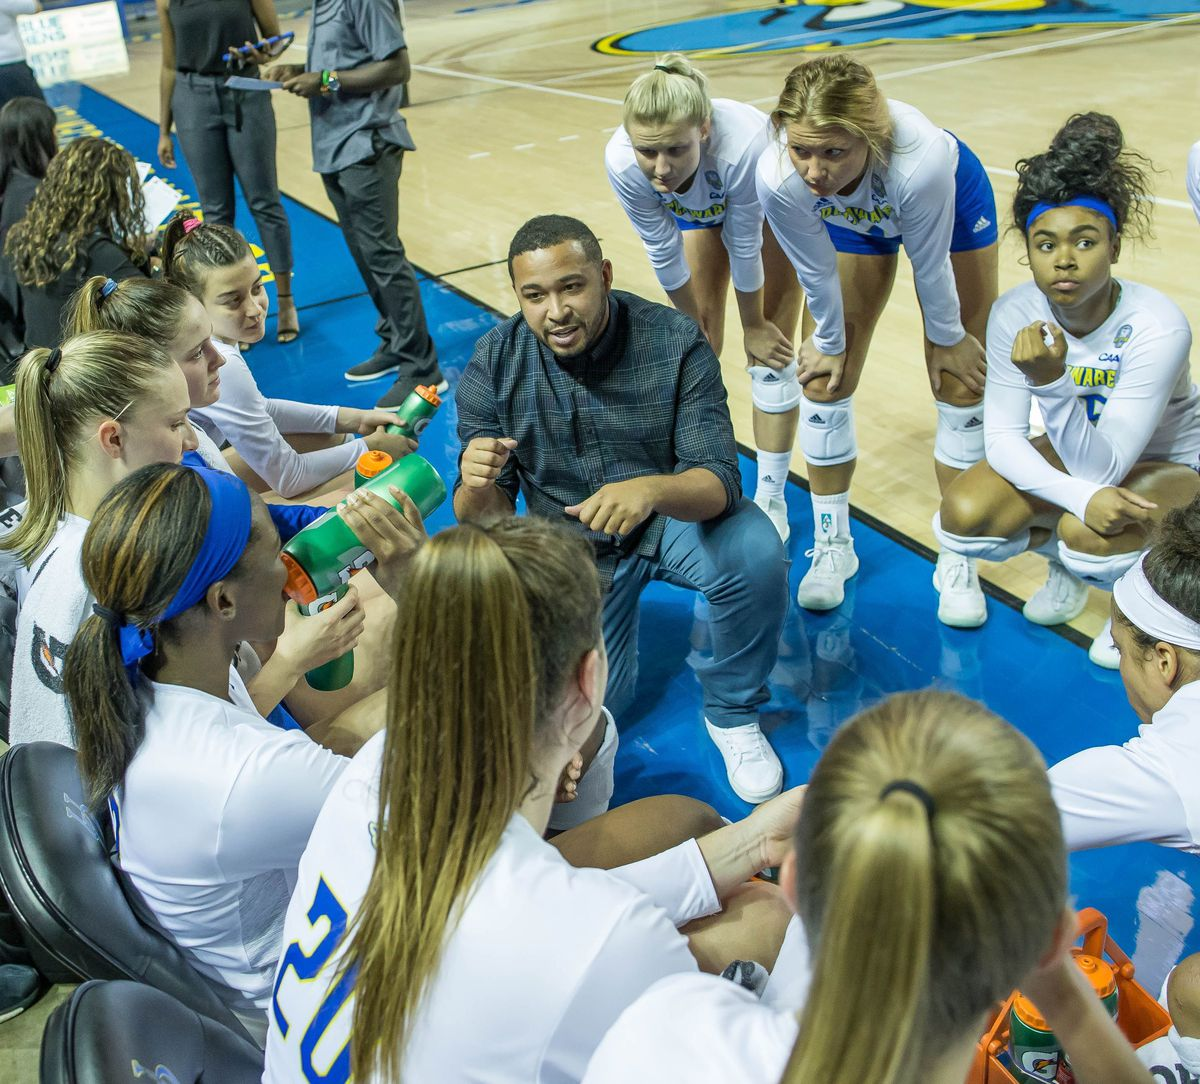 Keith Anderson in the huddle while at the University of Delaware.